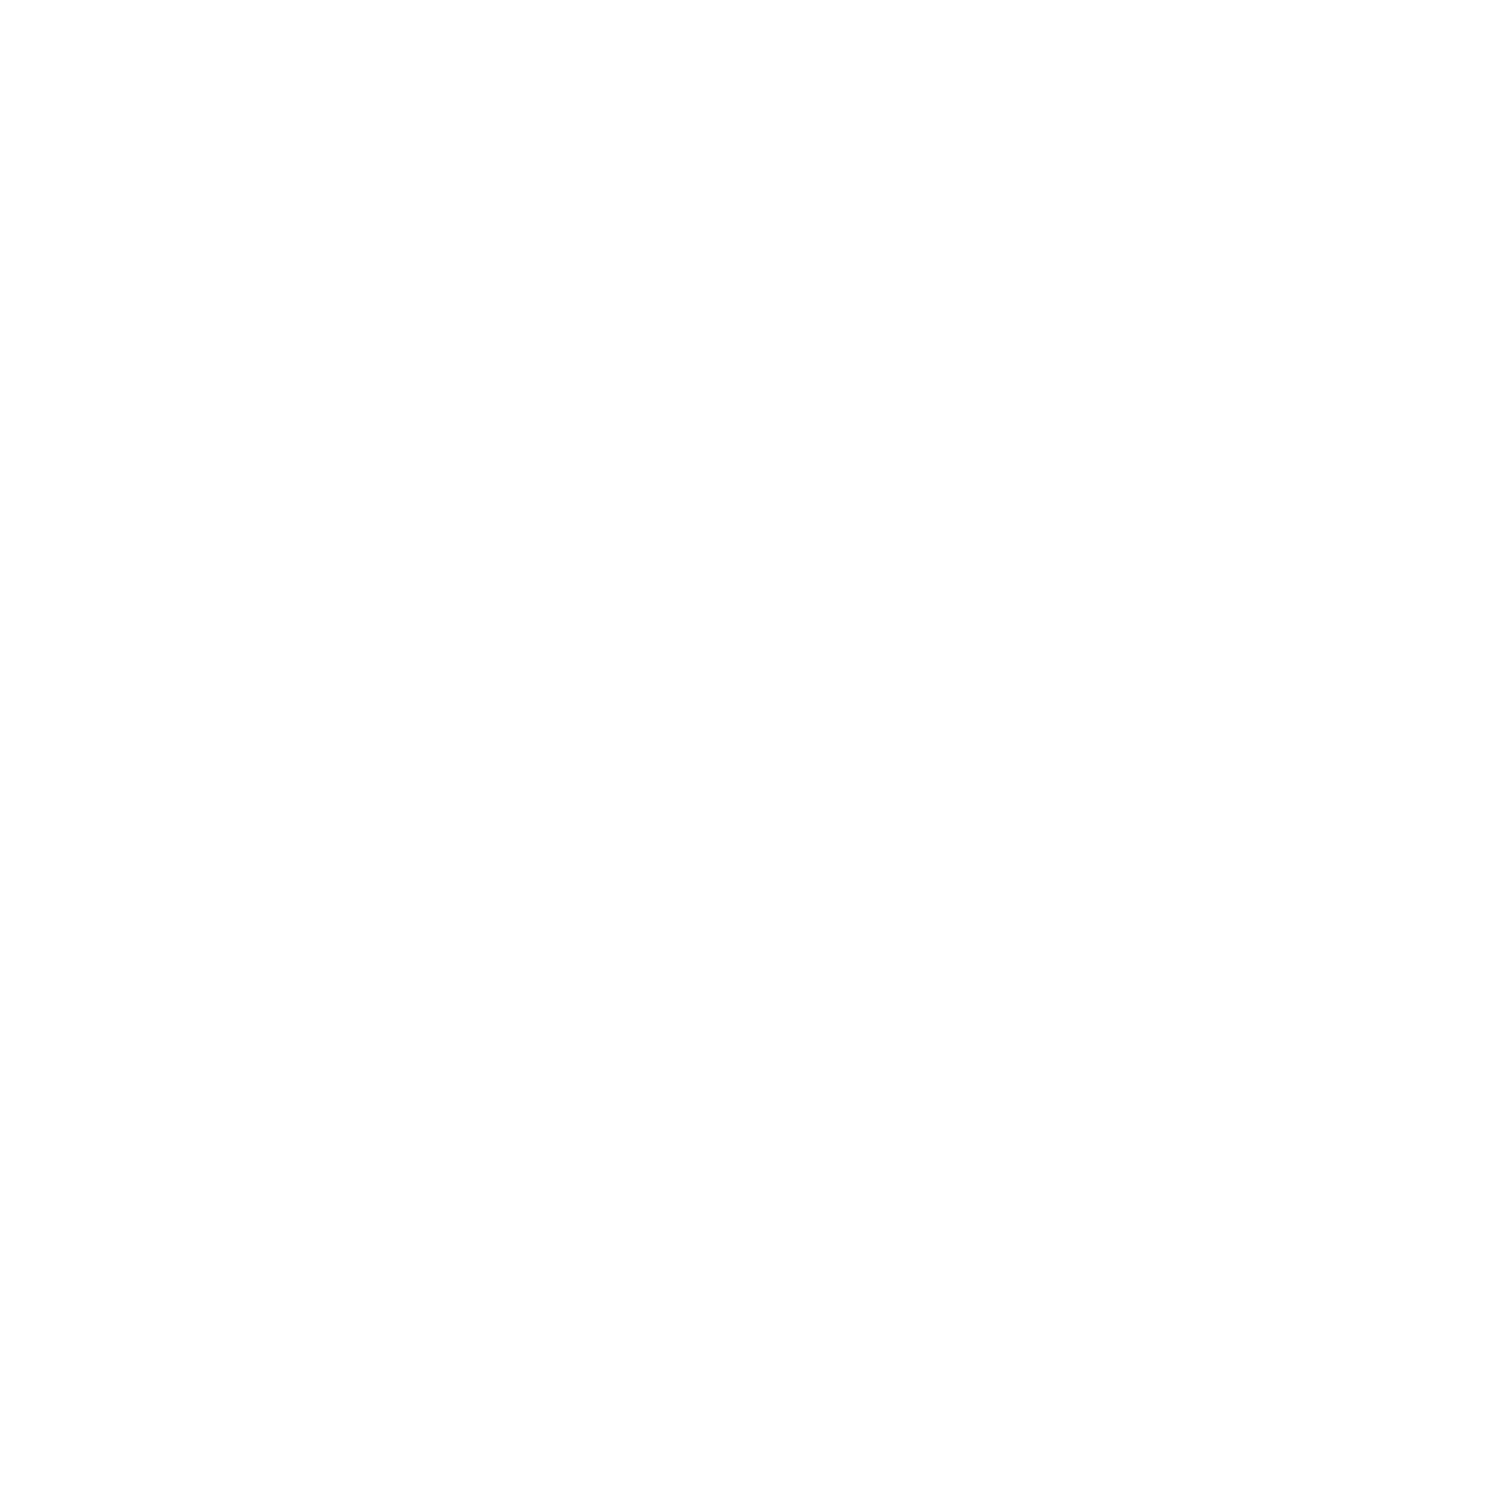 Caan & Rose Estates Ltd